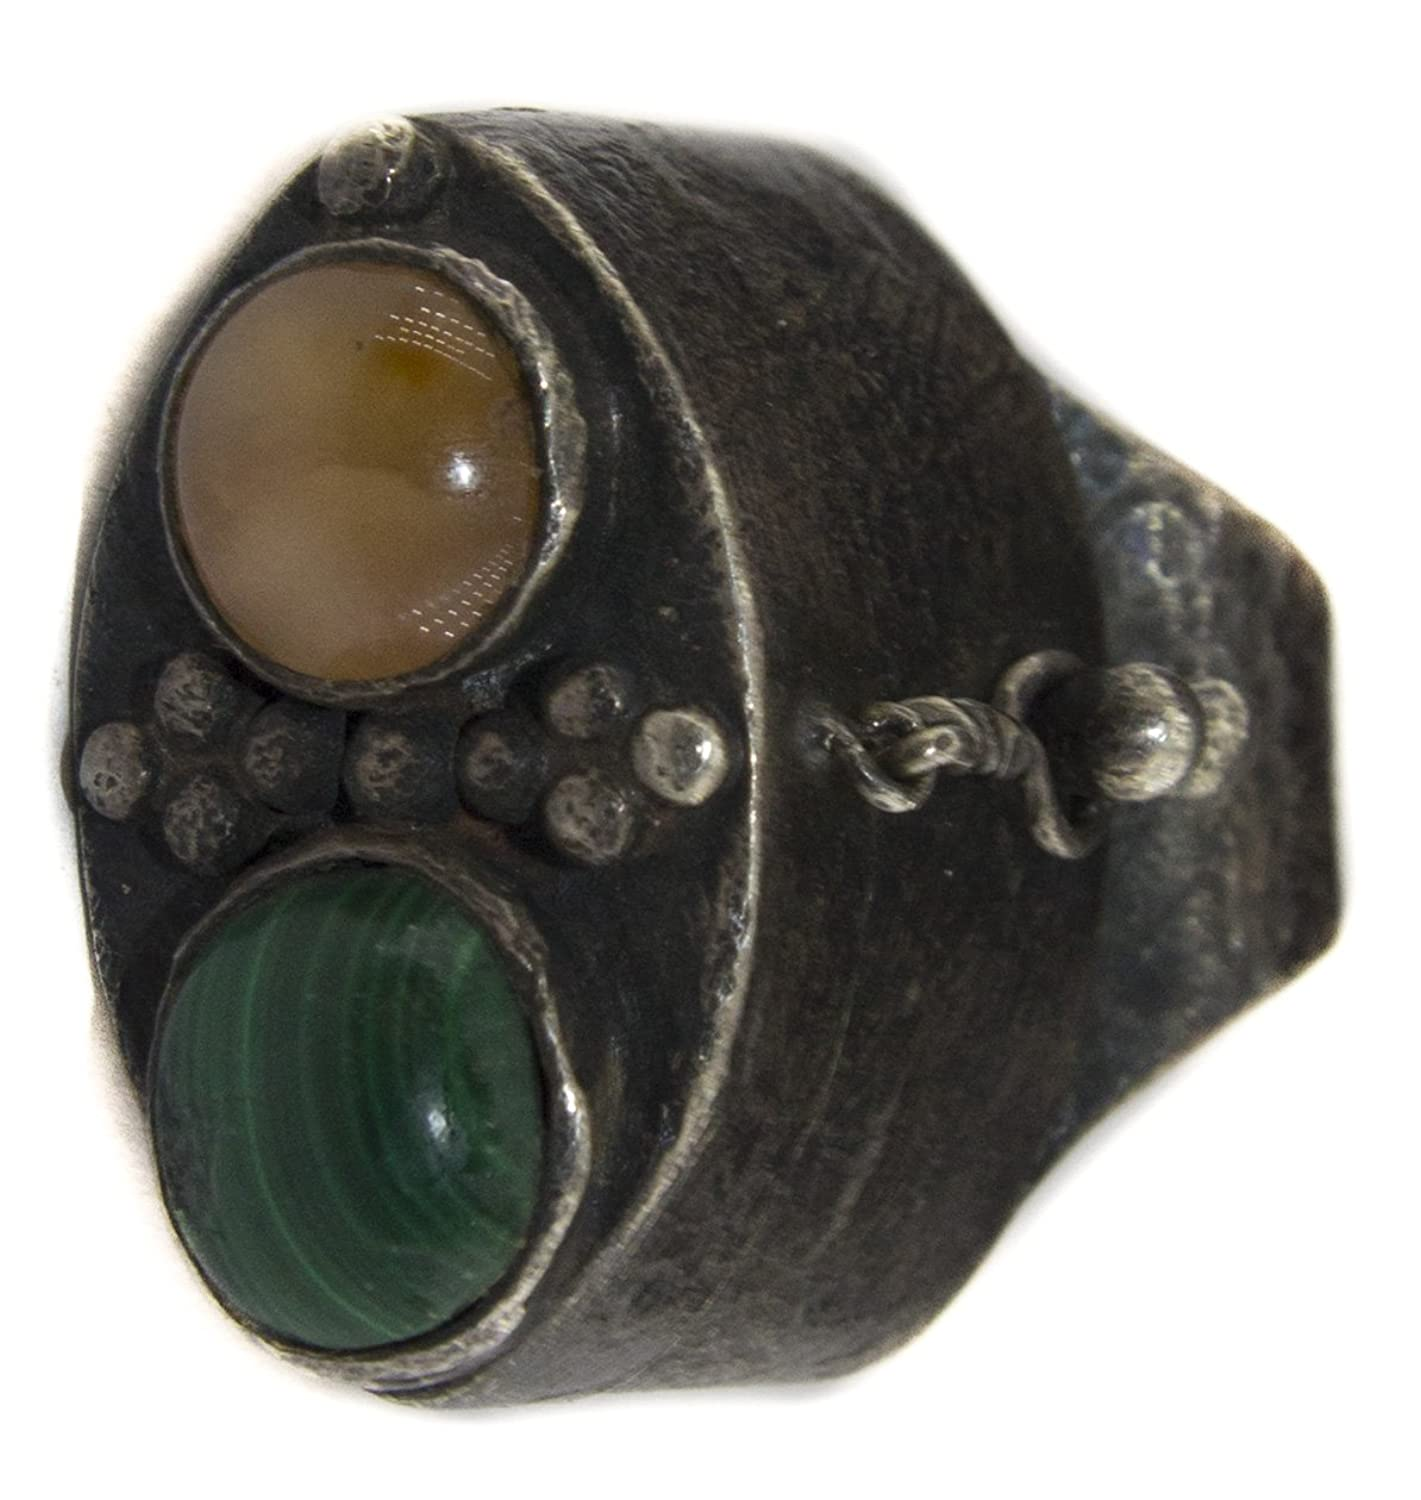 Antique Secret poison box sterling silver men ring handmade, agate and malachite natural gemstone